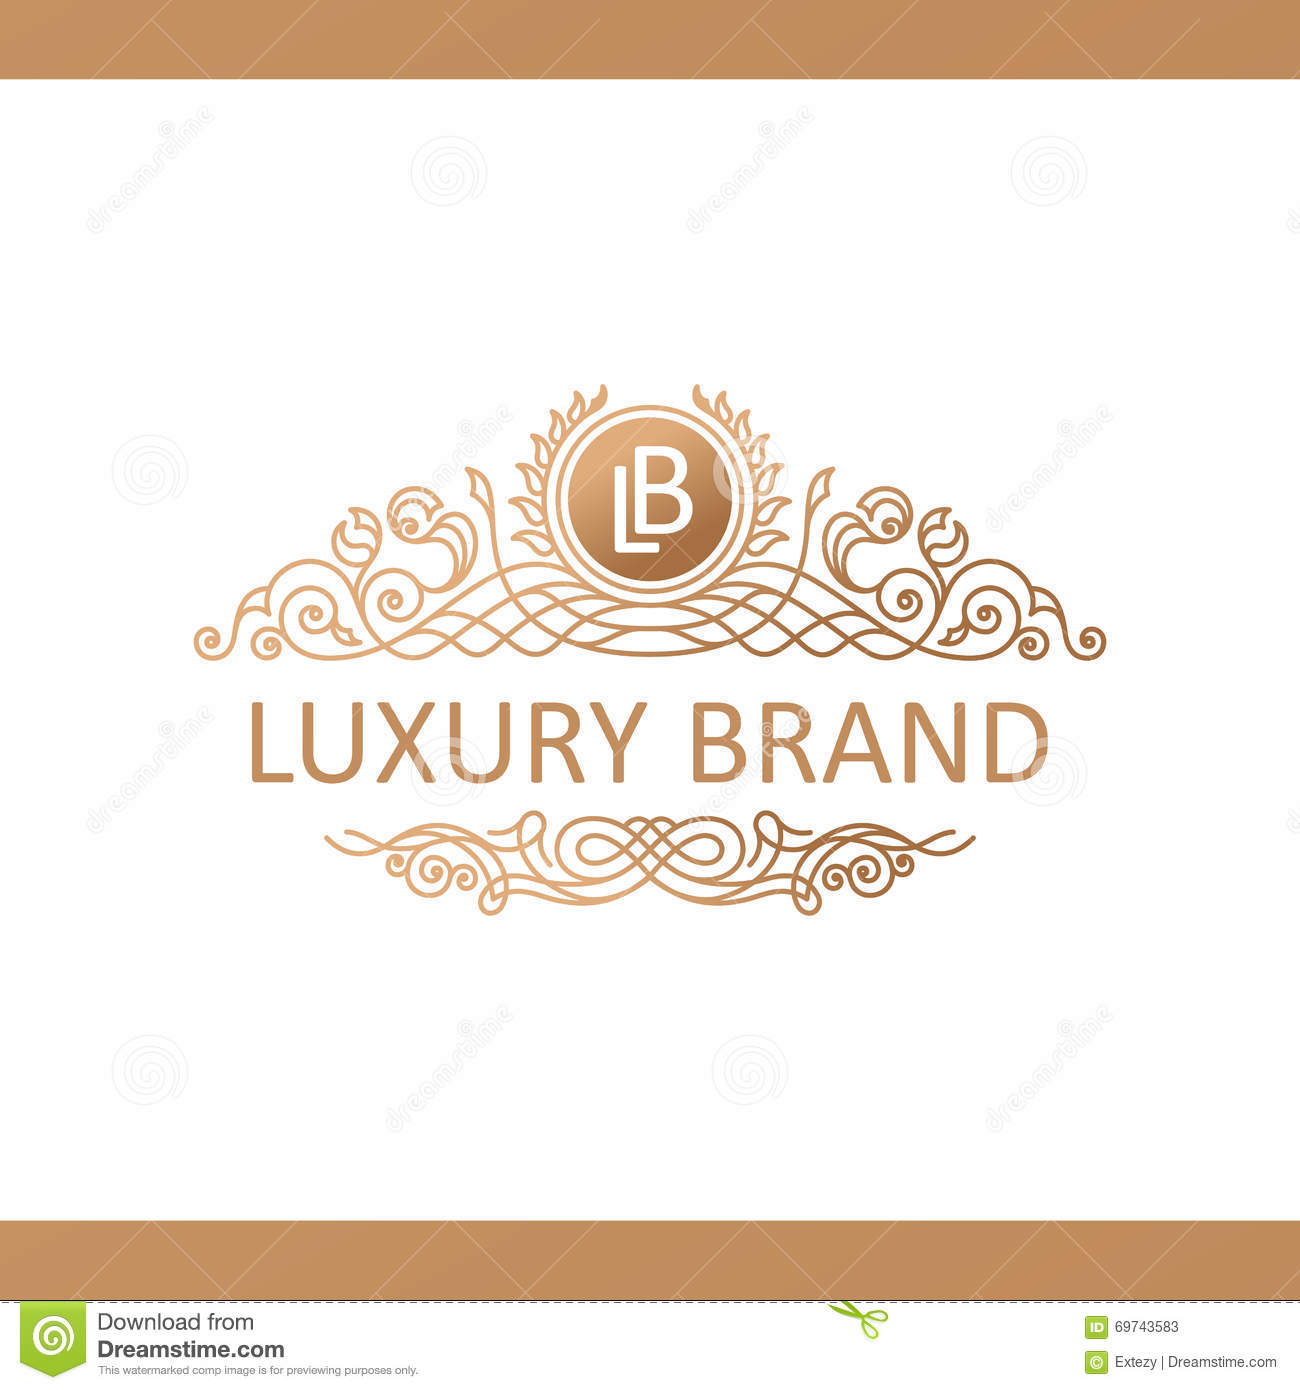 Luxury hotel management company logo bing images for Luxury hotel finder